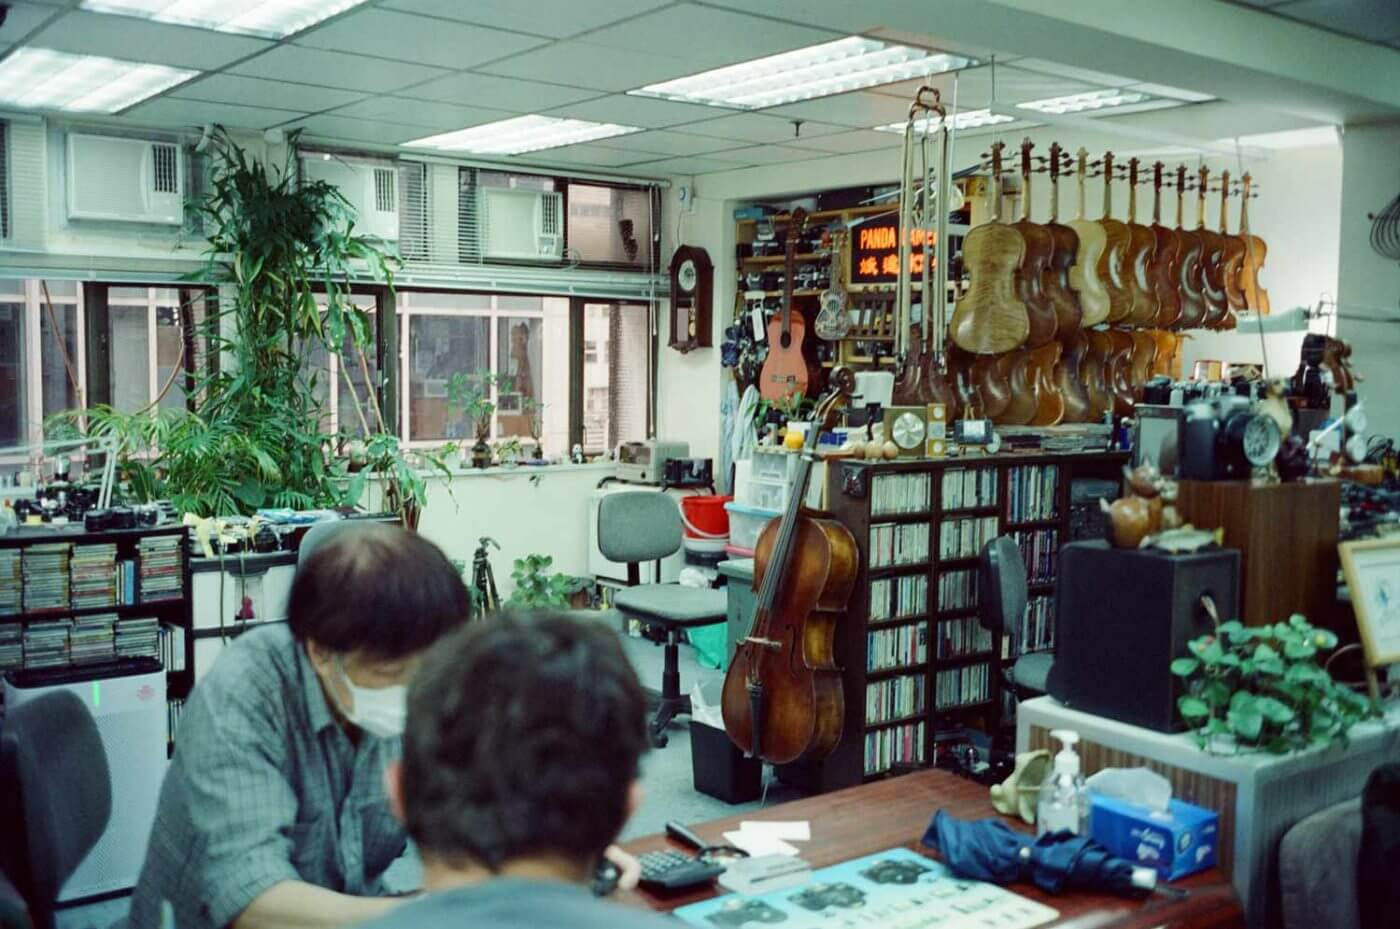 Panda-camera-shop-repair-centre-Hong-Kong-Central-Kodak-vision3-5219-500t-light-lens-lab-光影鏡頭實驗室-35mm-f2-black-paint-uncle-tat-studio-violin-decor-music-CD-classic